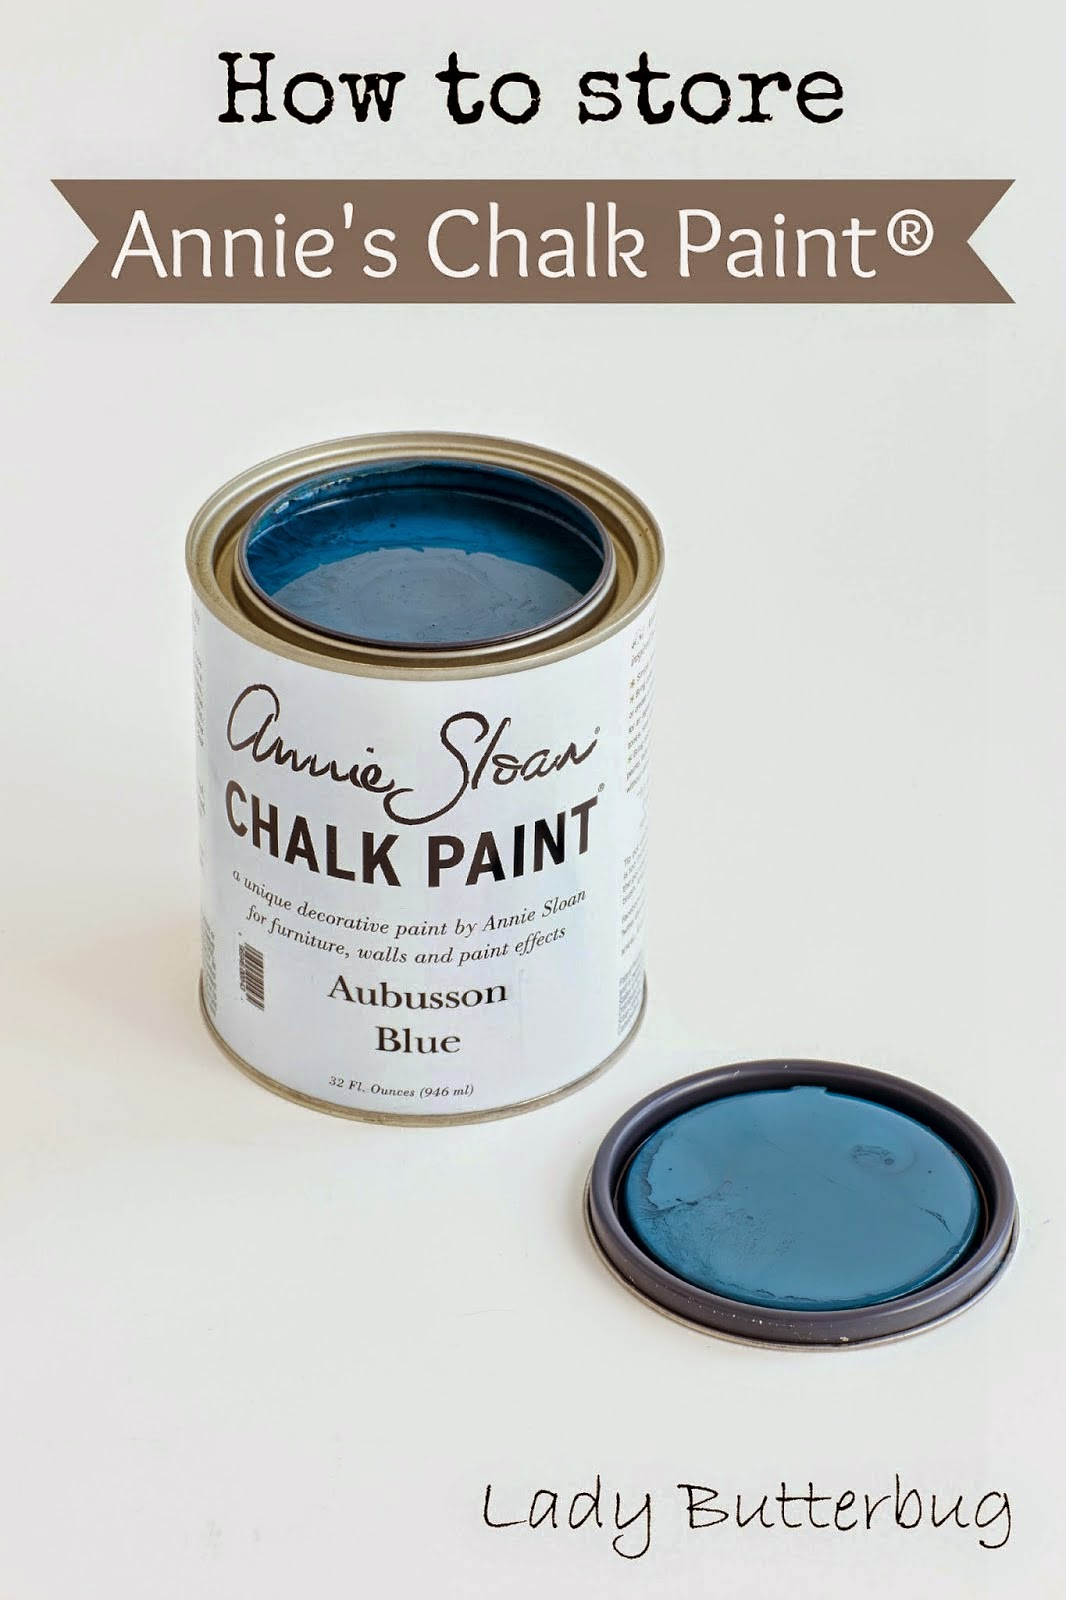 How to Store Annie's Chalk Paint®